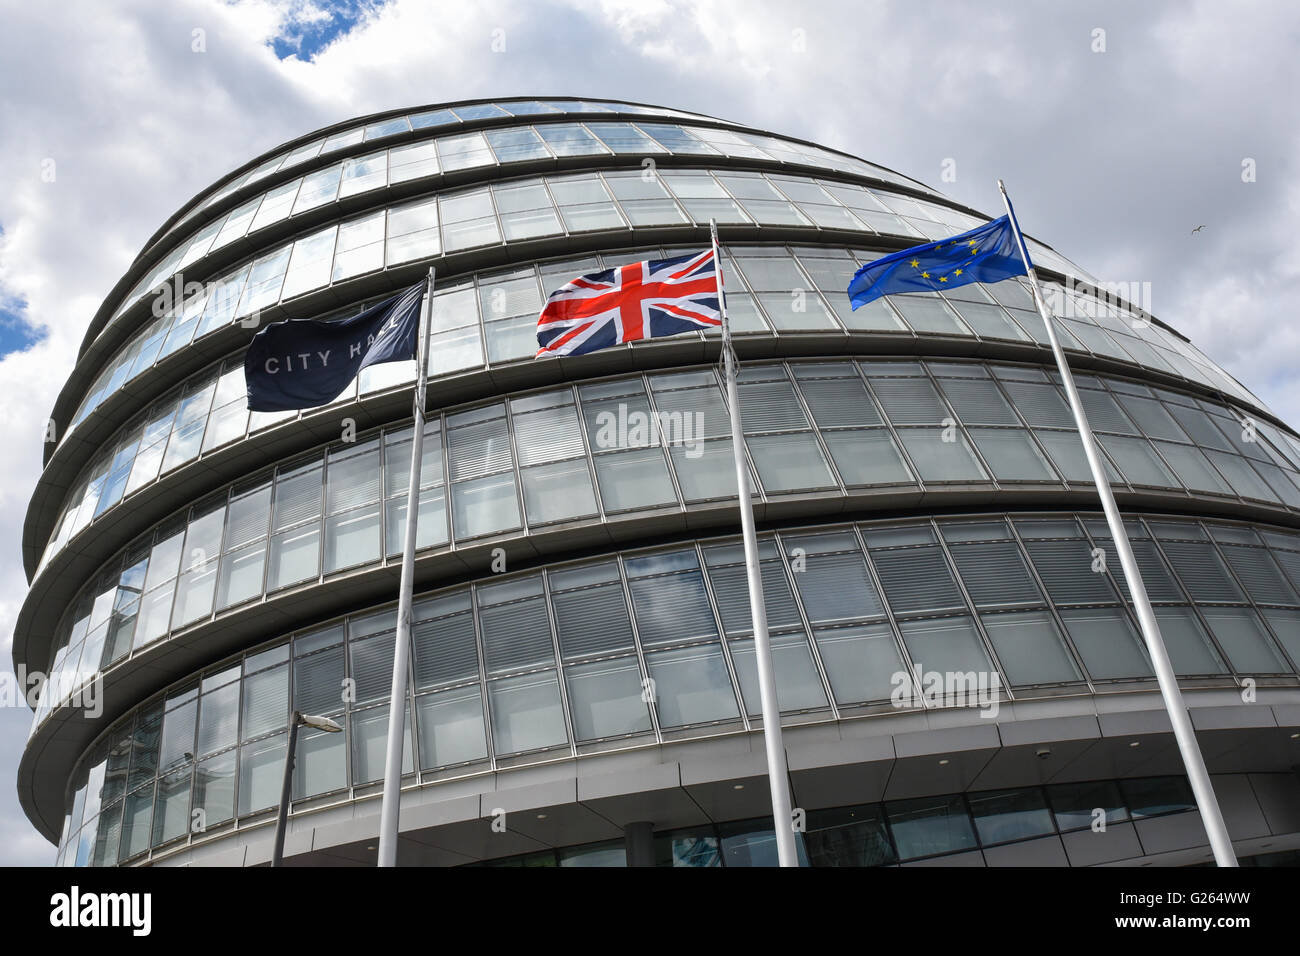 City Hall, London, UK. 24th May 2016. New London Mayor Sadiq Khan has the EU flag in front of City Hall in London. - Stock Image